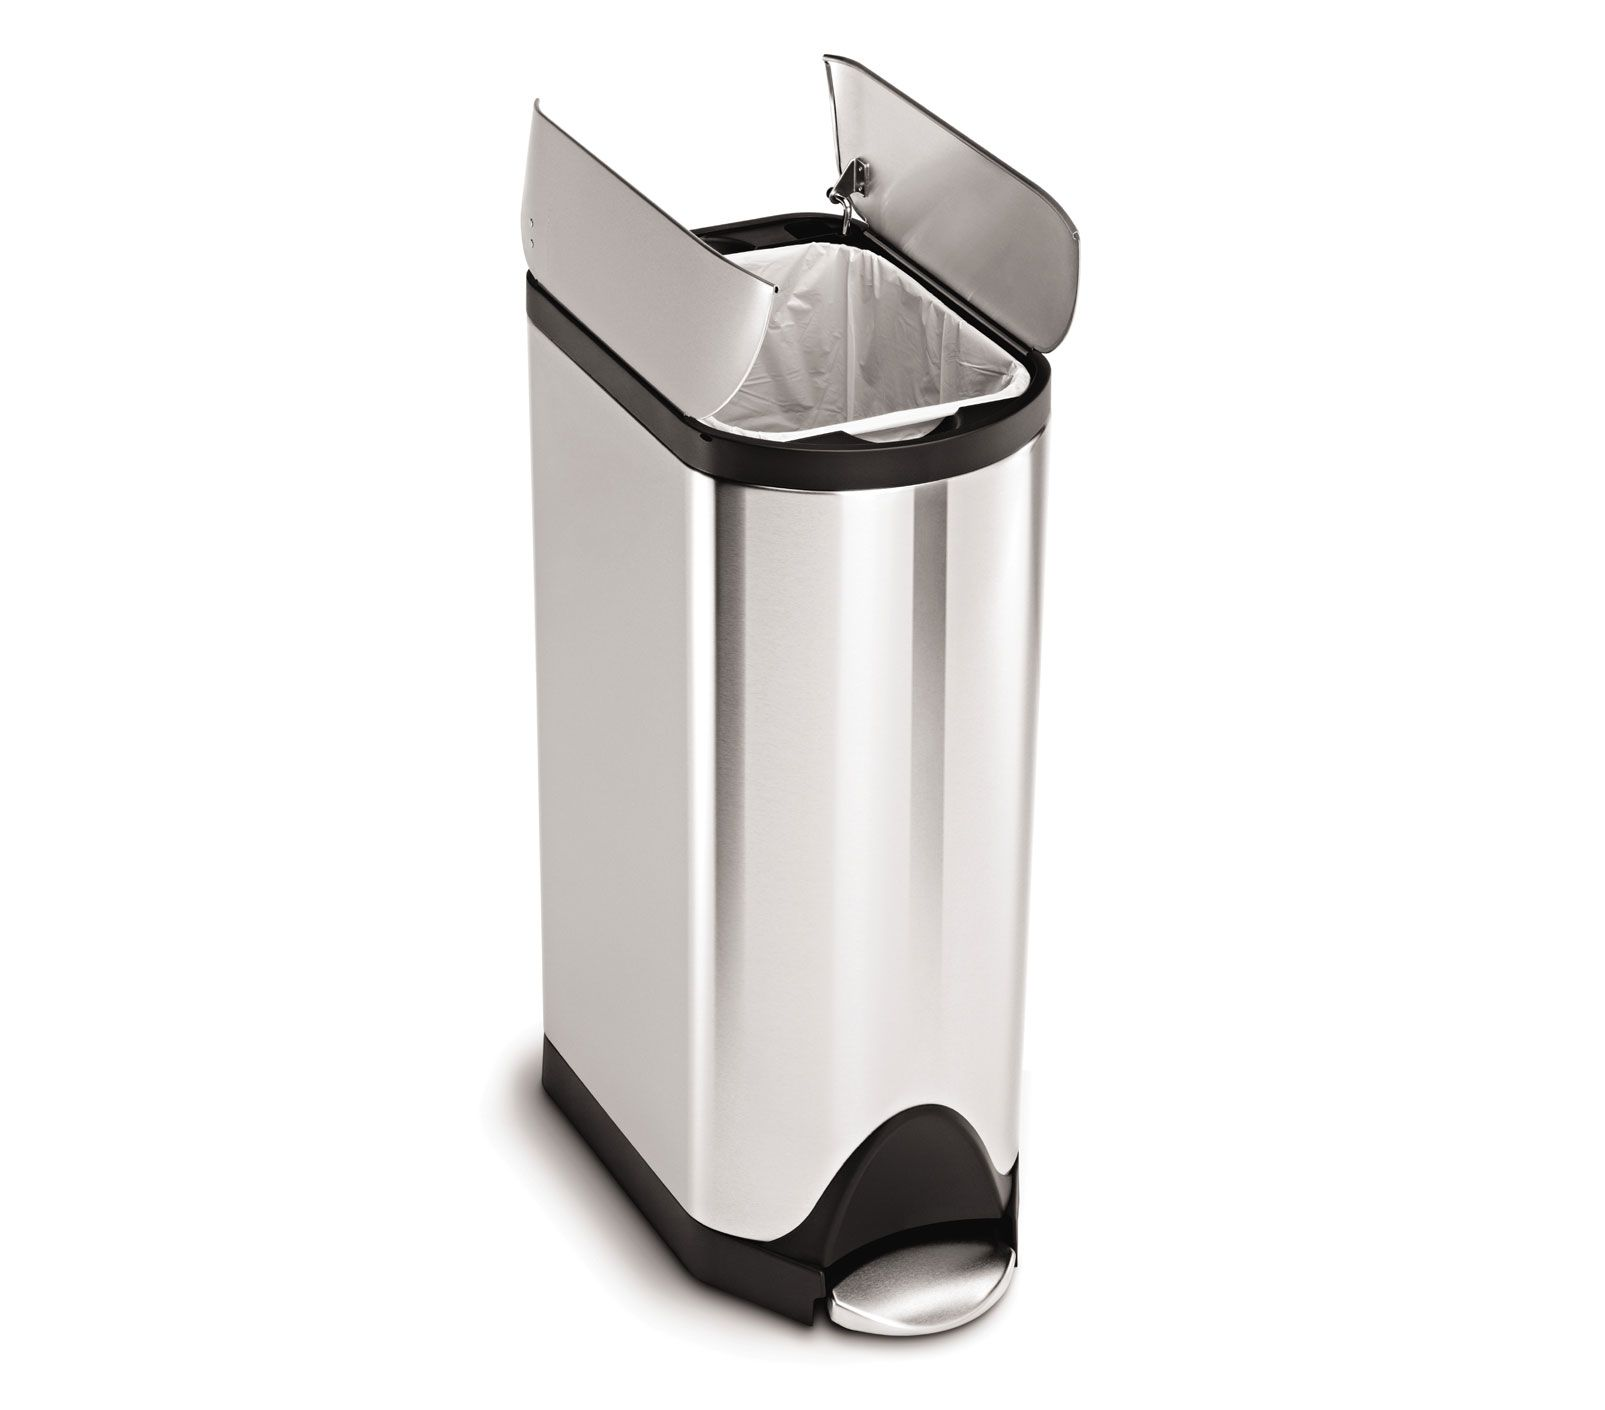 Simplehuman 30l Butterfly Step Trash Can Brushed Stainless Steel In 2021 Simplehuman Trash Can Brushed Stainless Steel Slim stainless steel trash can